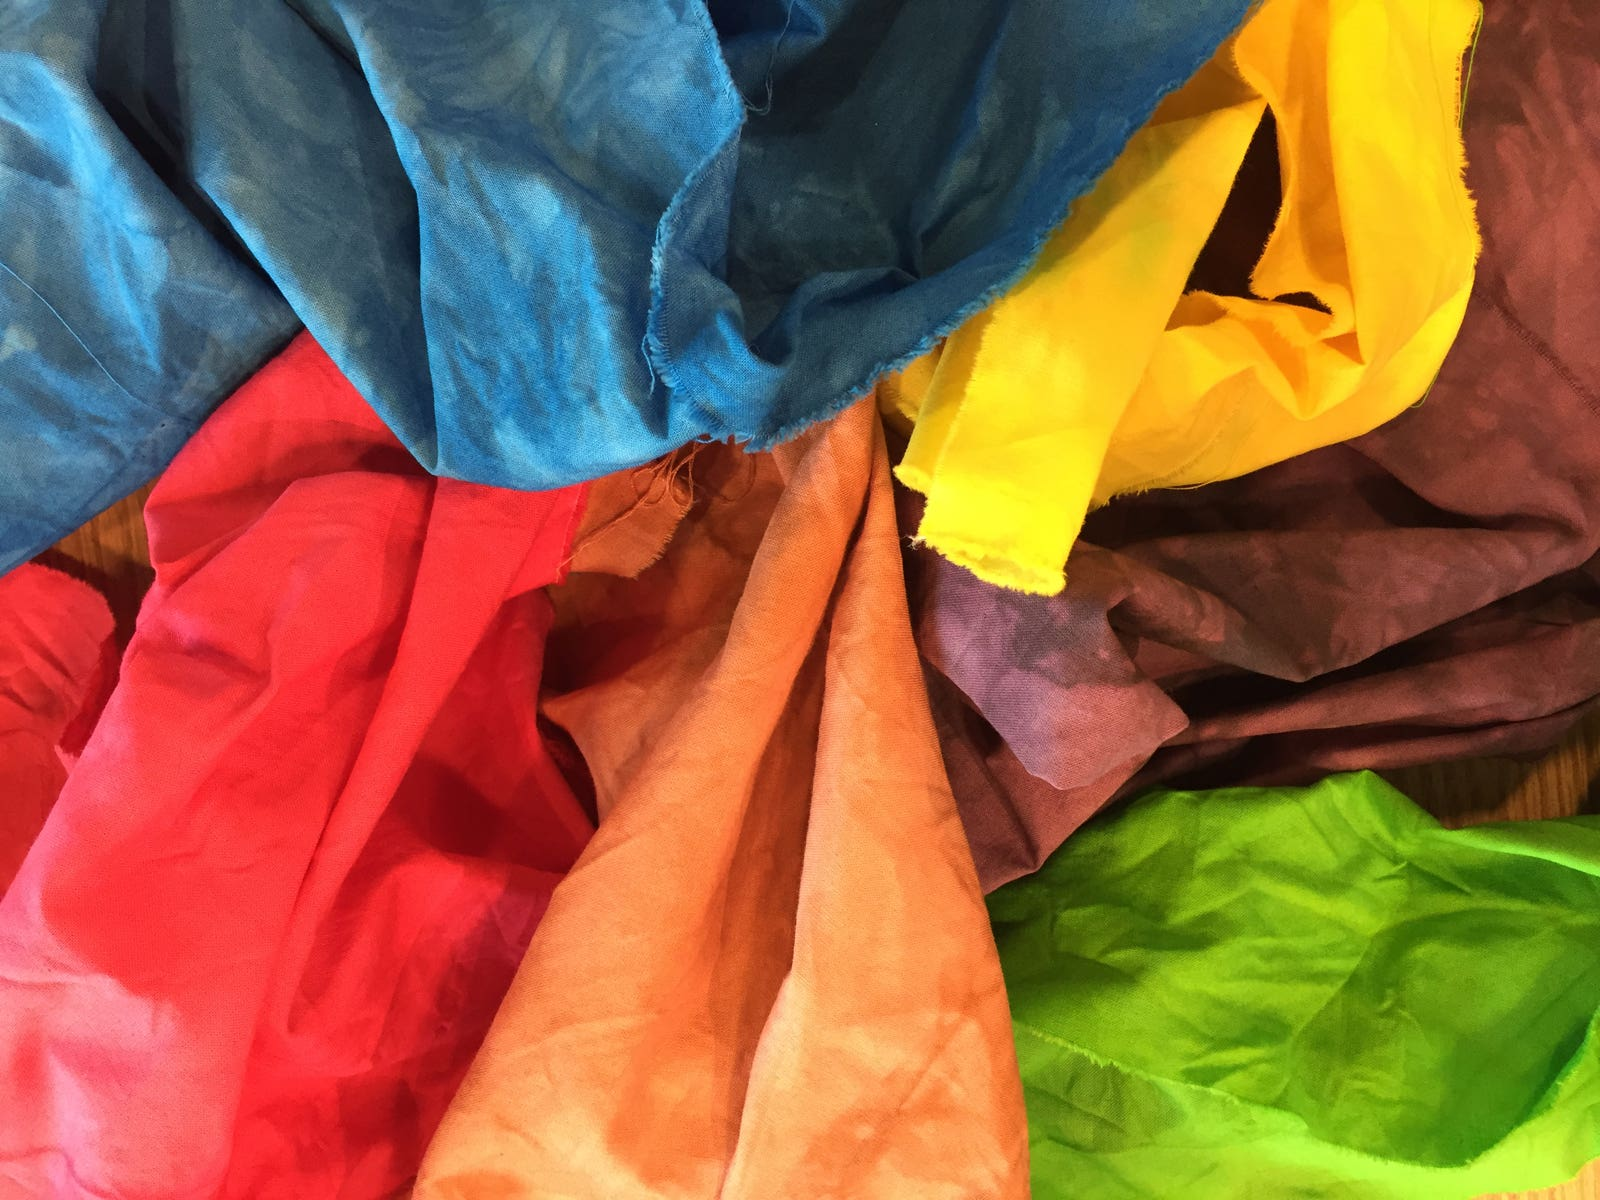 Pile of dyed fabric in various colors